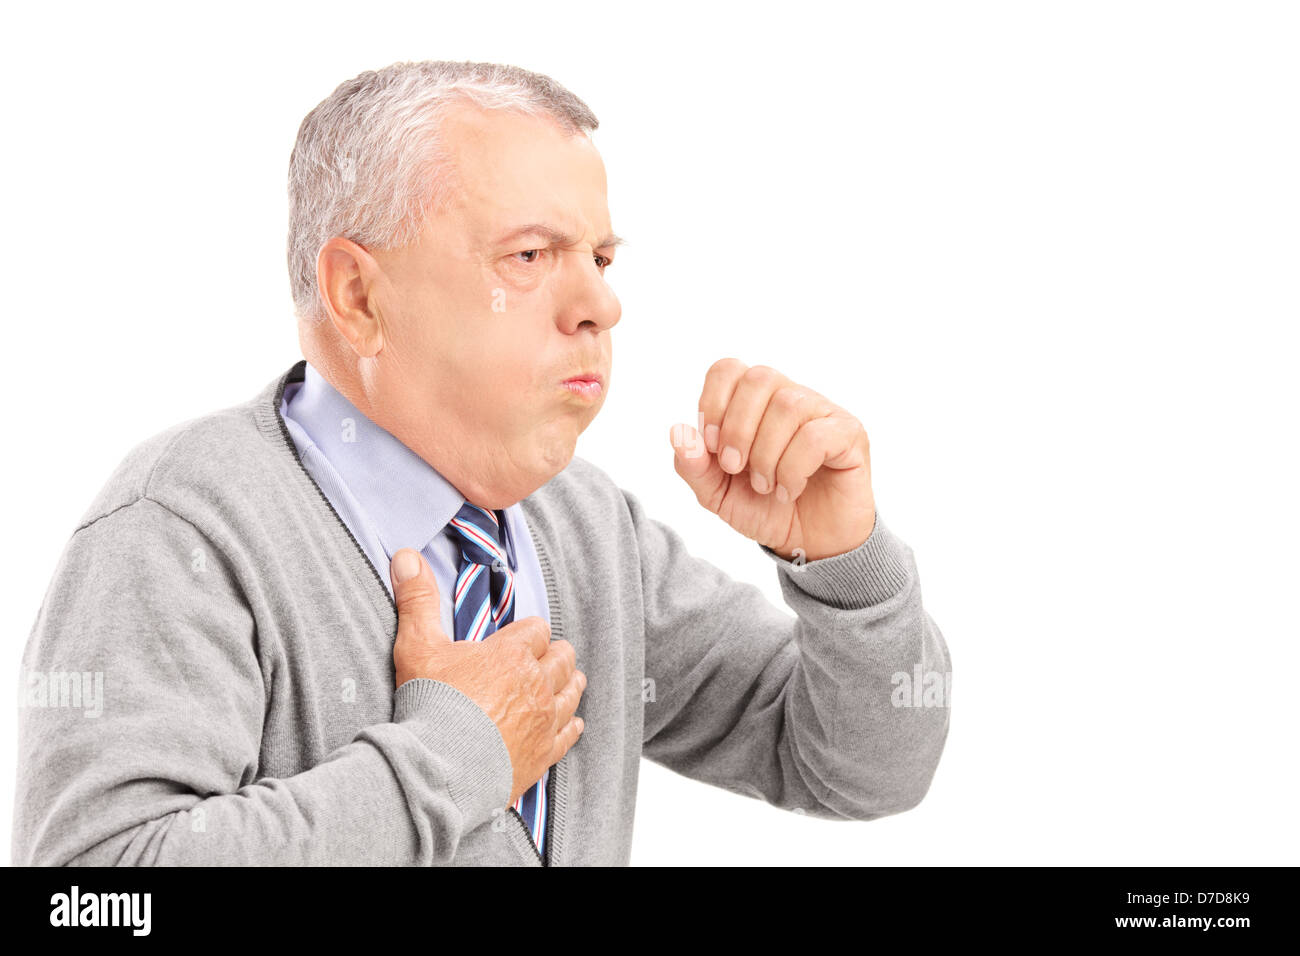 A mature gentleman coughing because of pulmonary disease isolated on white background - Stock Image